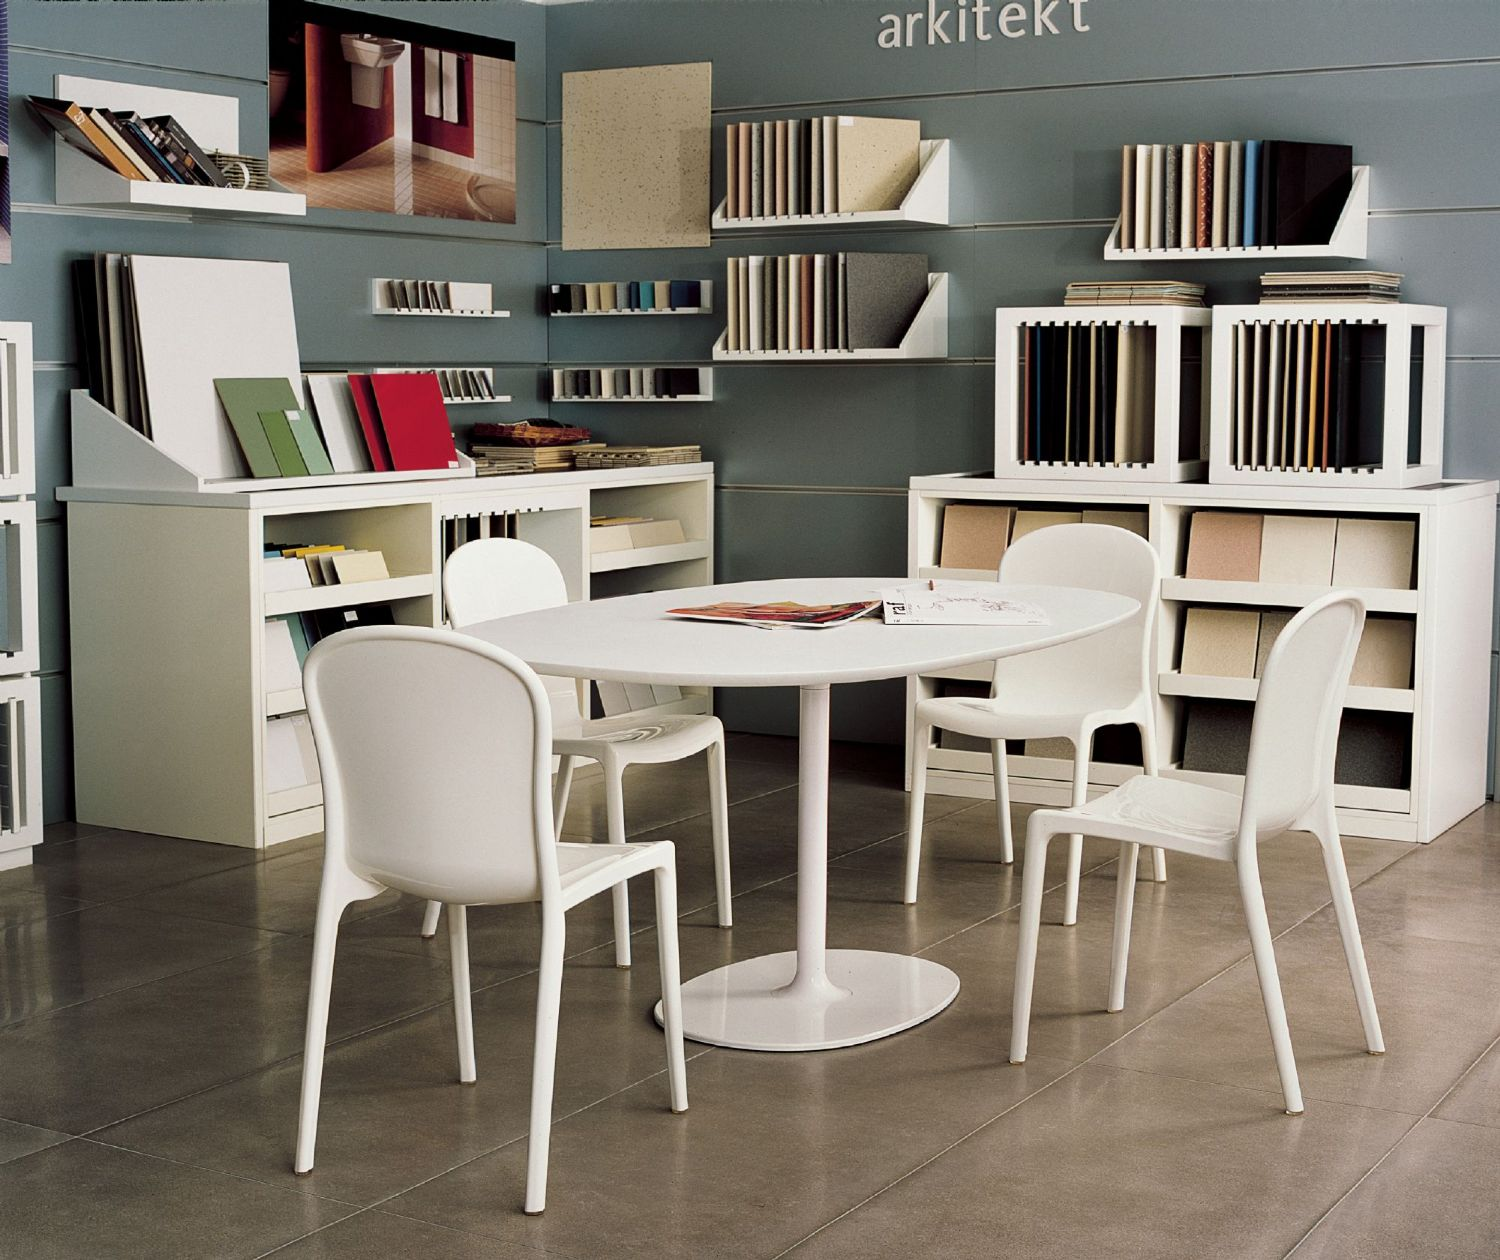 see through dining chairs for affairs melbourne fl compamia victoria polycarbonate modern chair